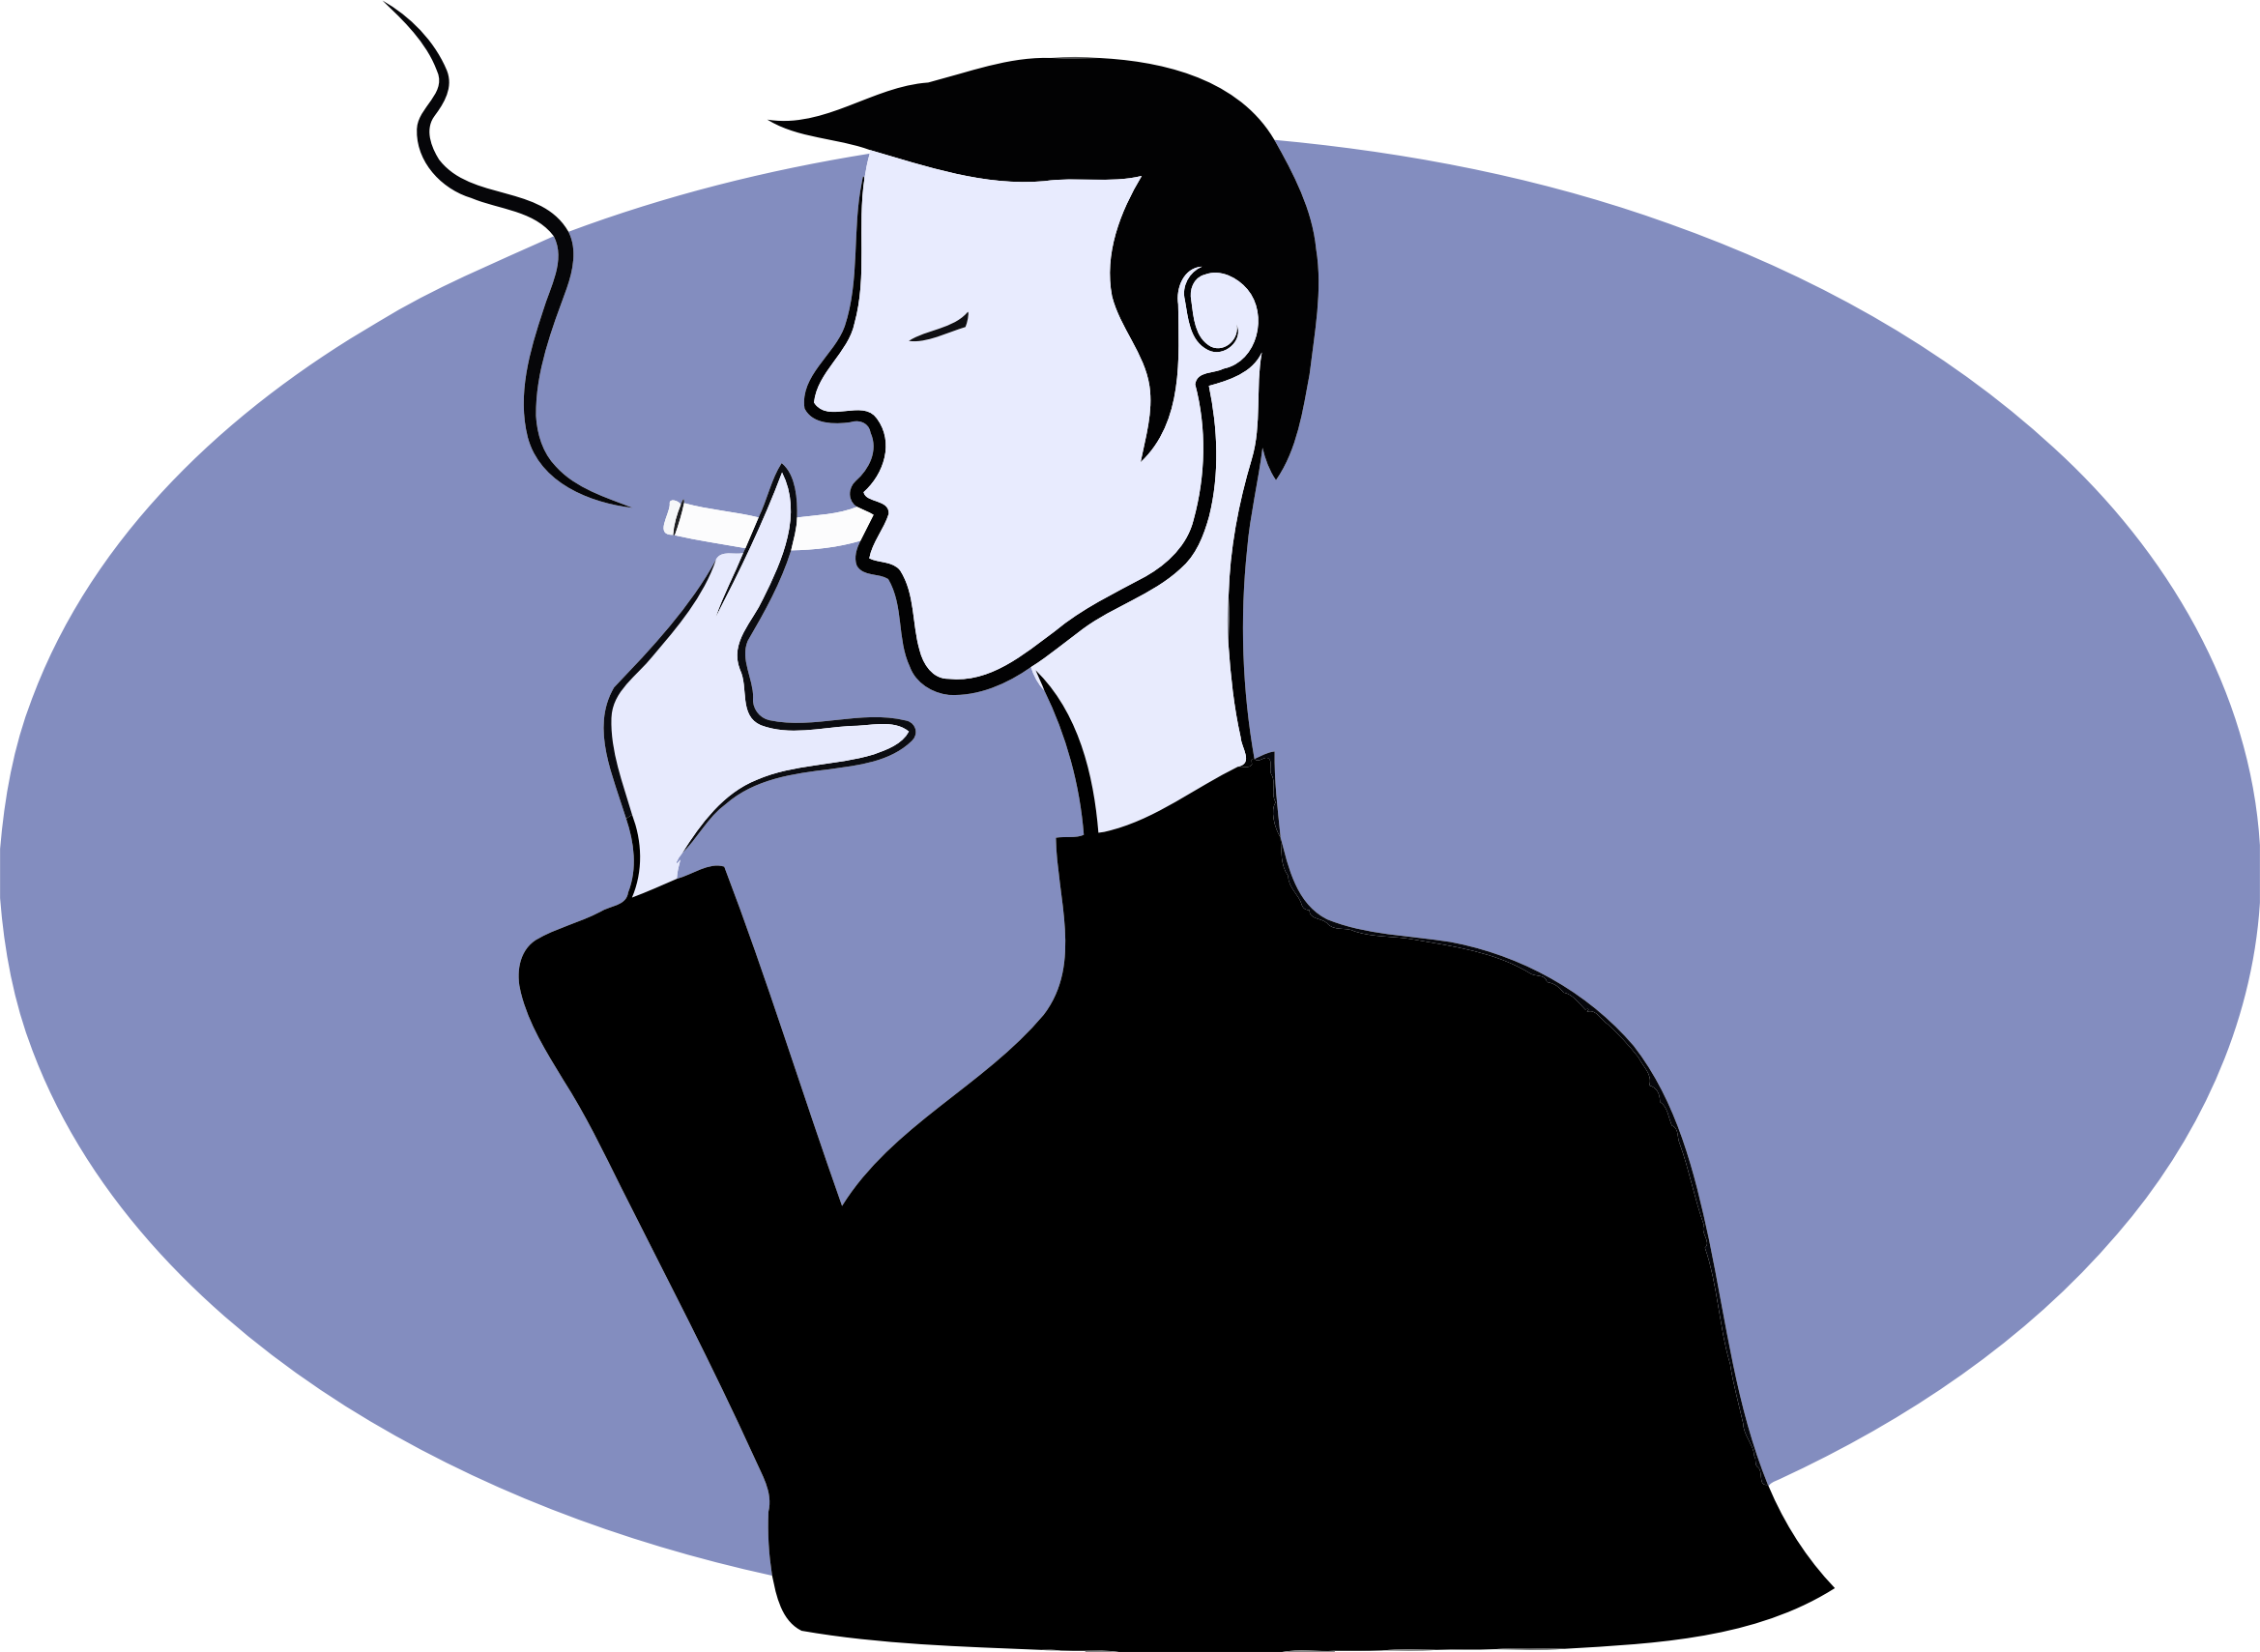 Father clipart far. S nicotine exposure may